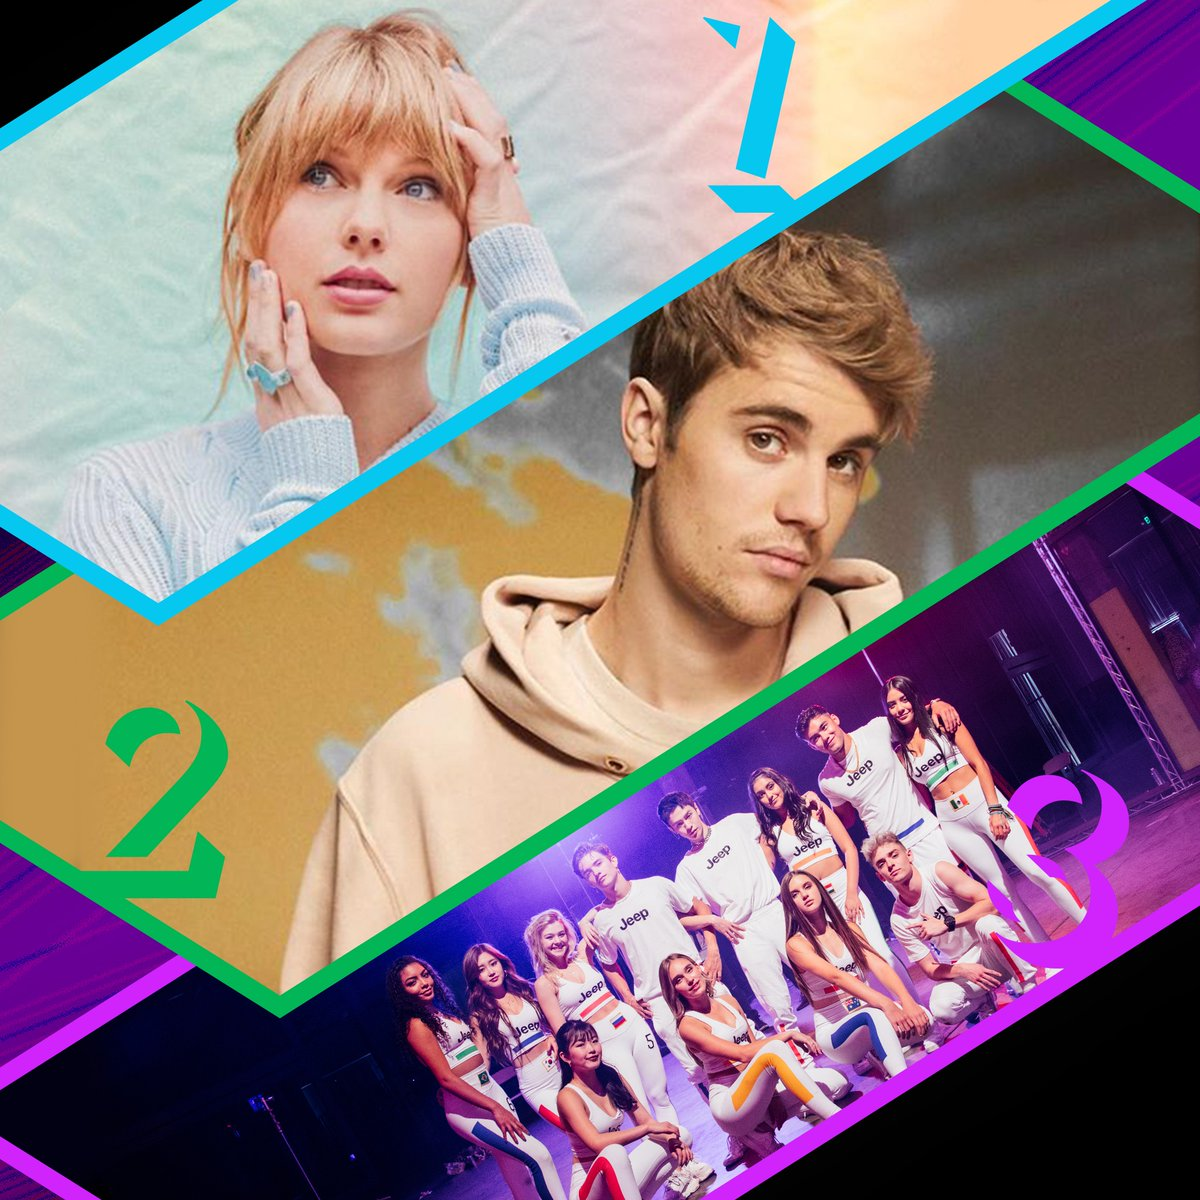 Here's Thursday's #RDTop3! 1. @taylorswift13 - #TheMan 2. @JustinBieber - #Intentions (f. @QuavoStuntin) 3. @NowUnitedMusic - #ComeTogether<br>http://pic.twitter.com/qLReOWSq6O